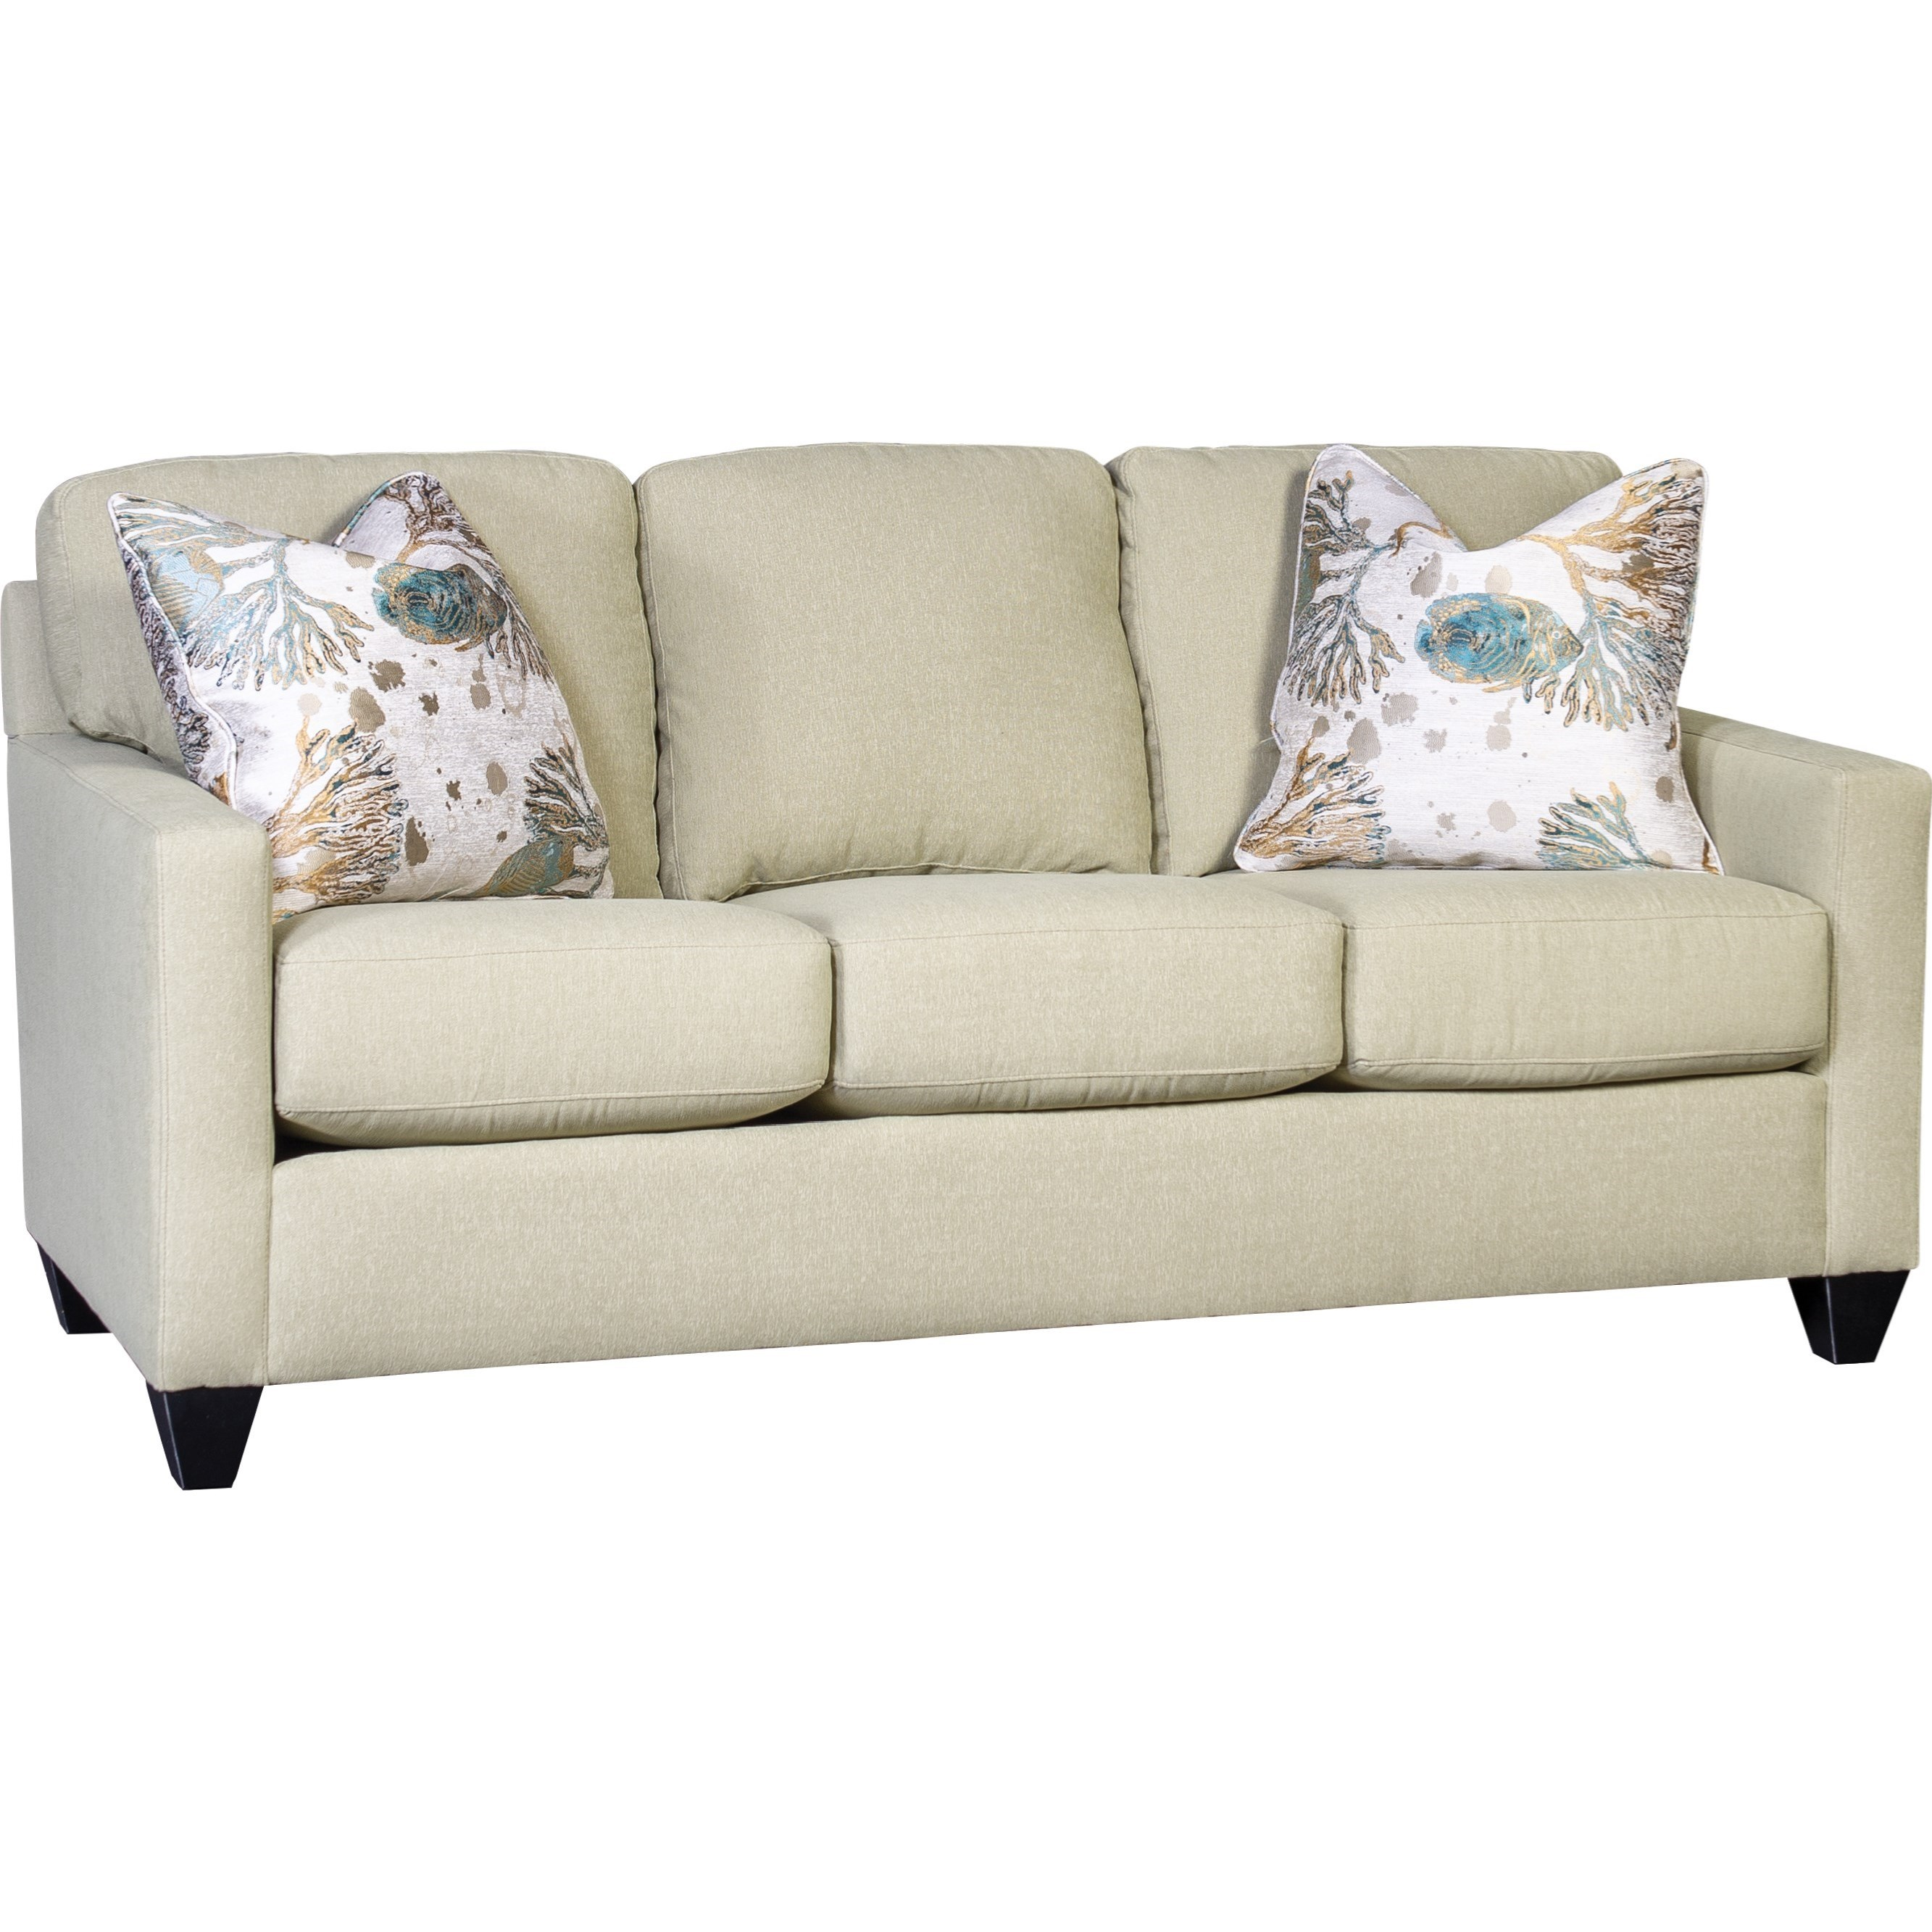 3488 Sofa by Mayo at Wilson's Furniture